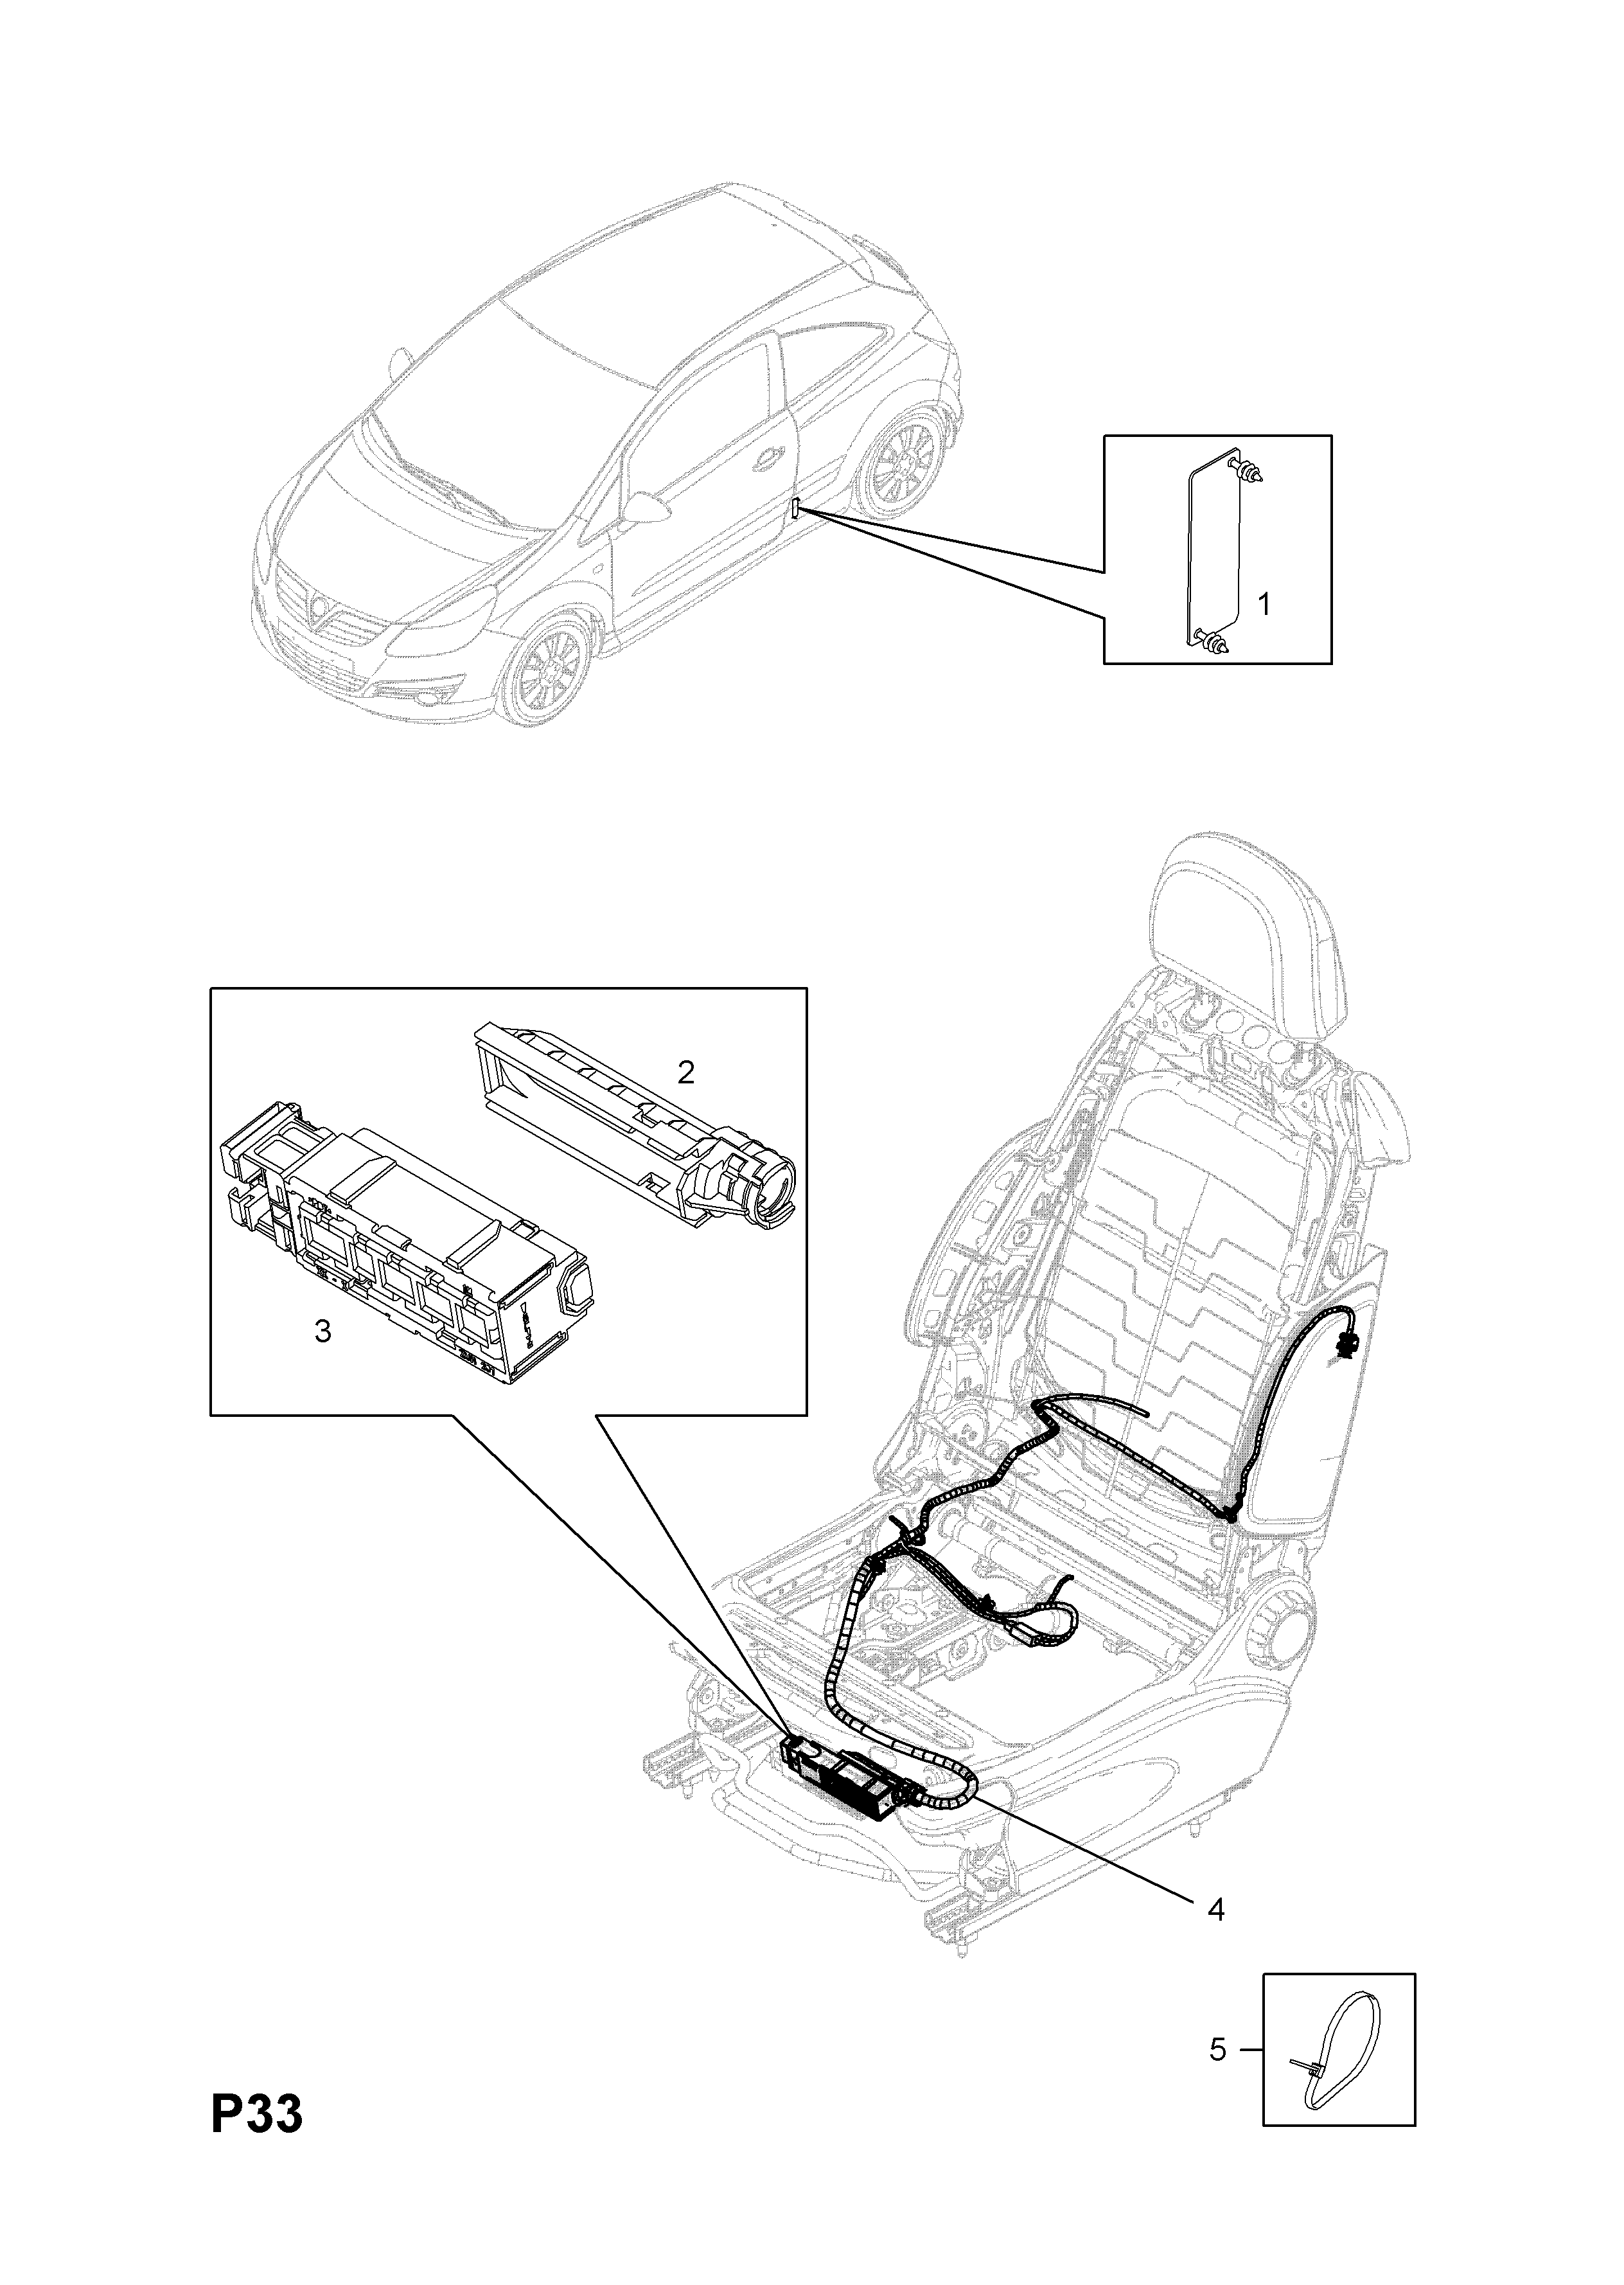 Opel Corsa D 2007 P Electrical 9 Wiring Harness 79front Seat Diagram Gm Part Number Genuine Description Range Front